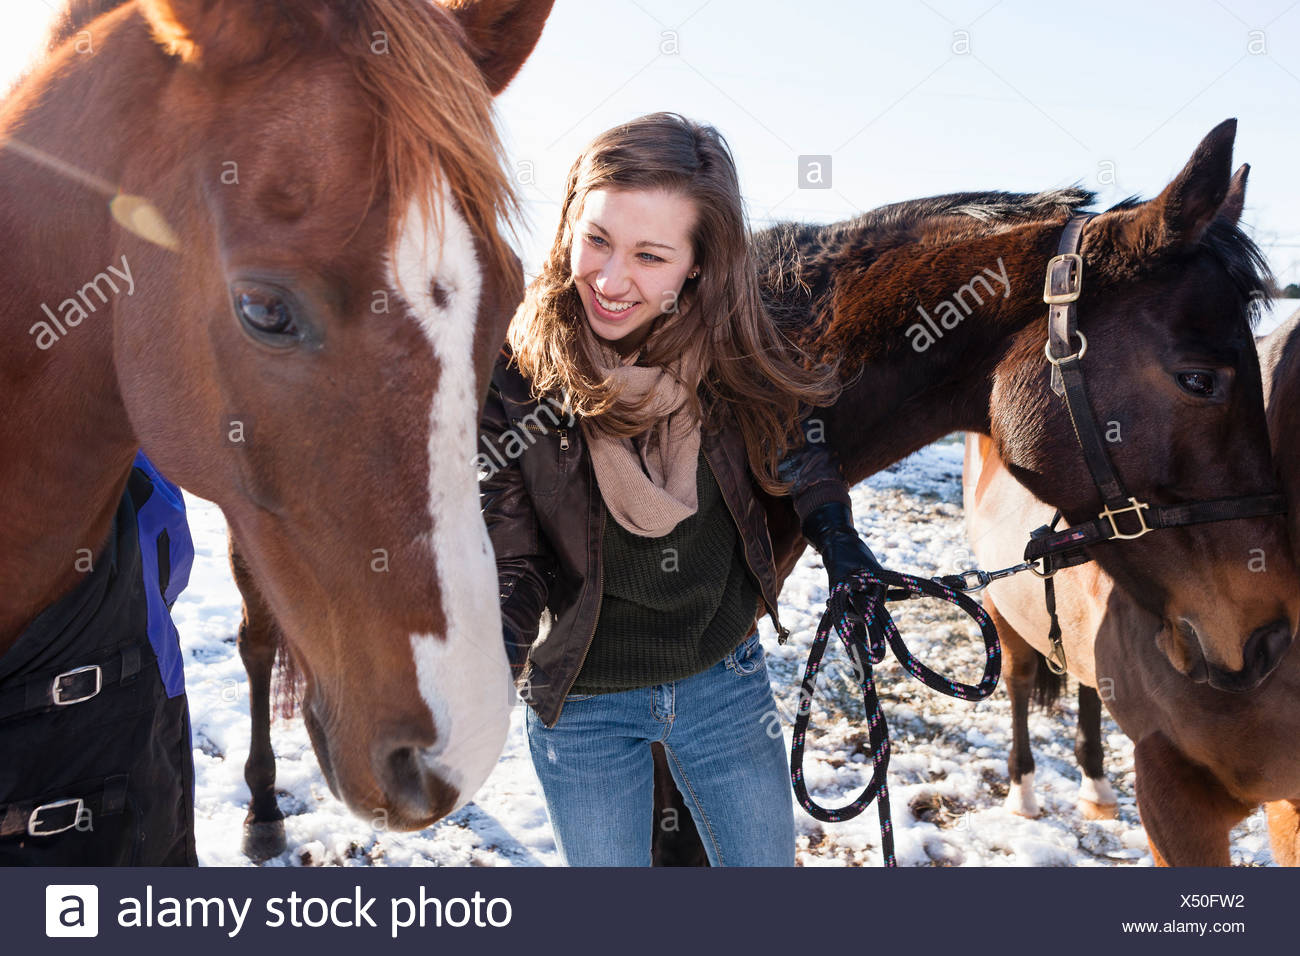 Young woman with horses in winter field - Stock Image